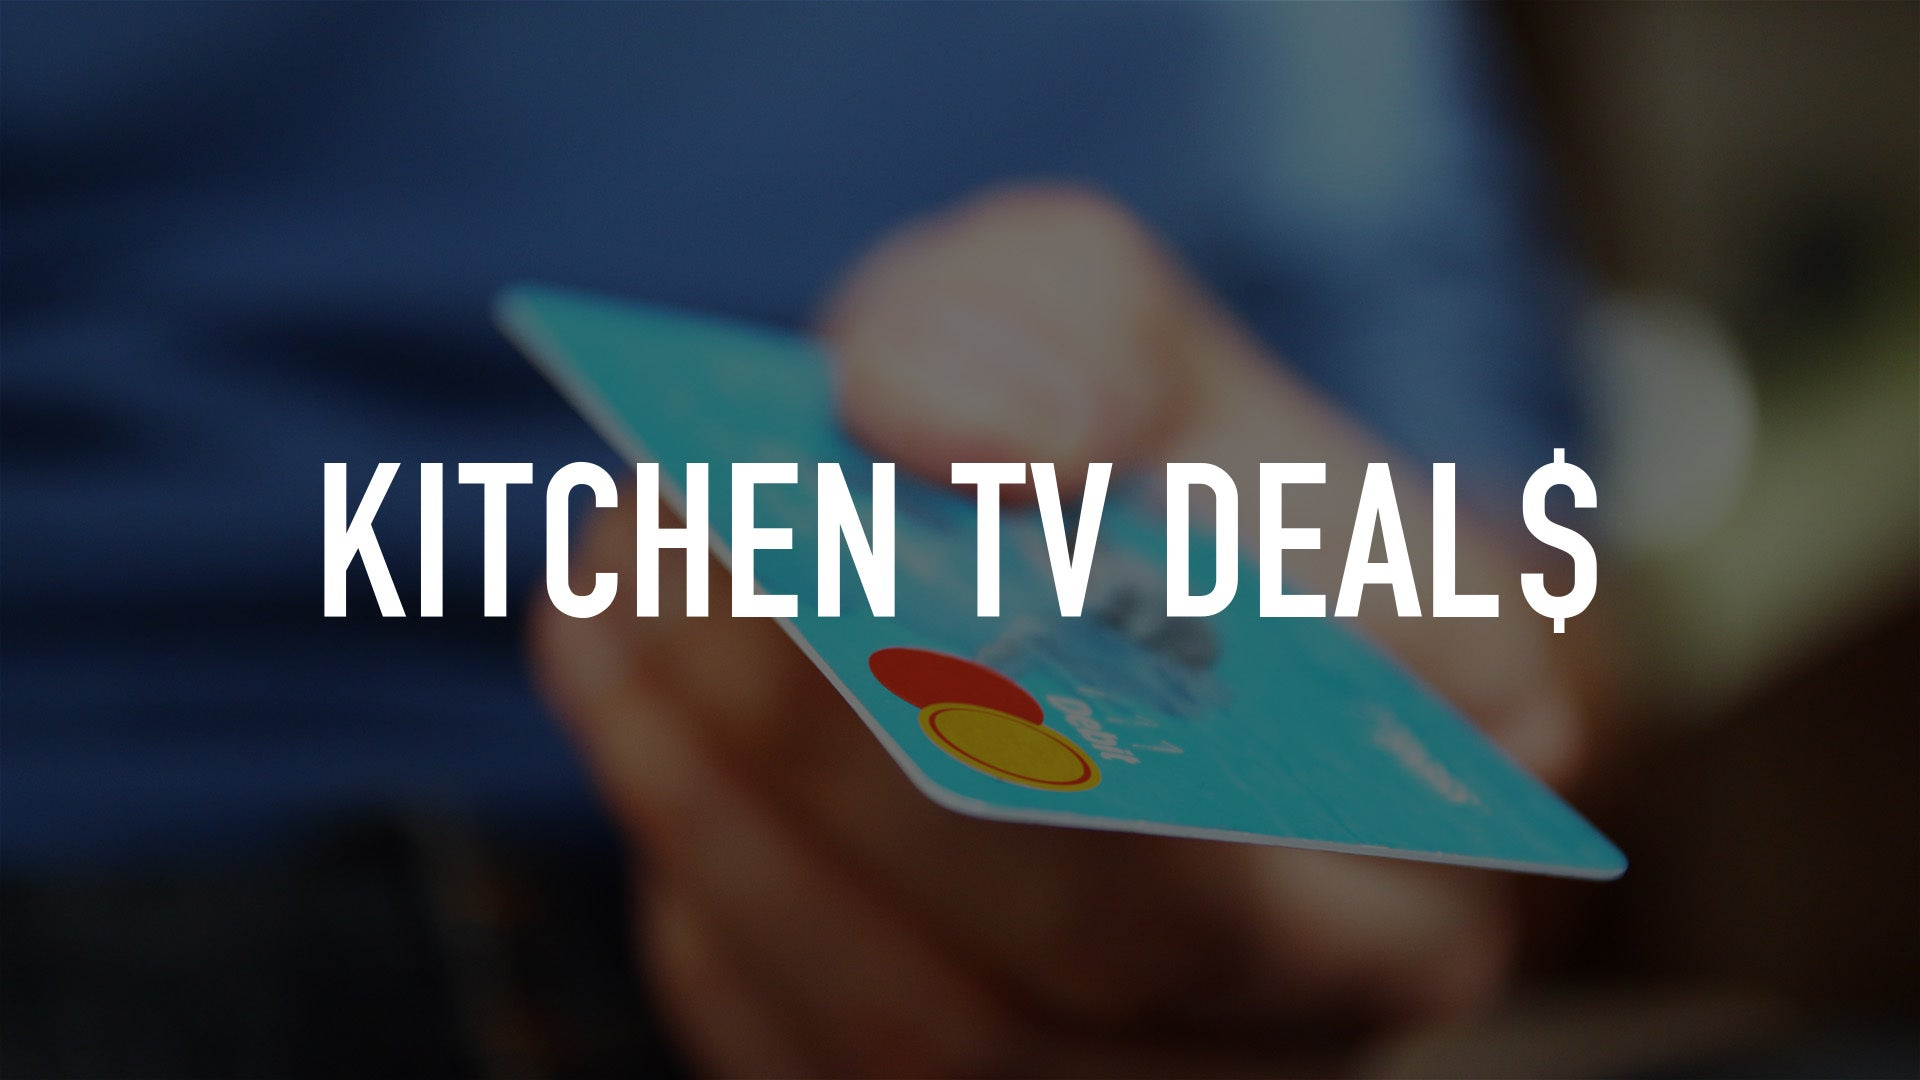 Kitchen TV Deal$